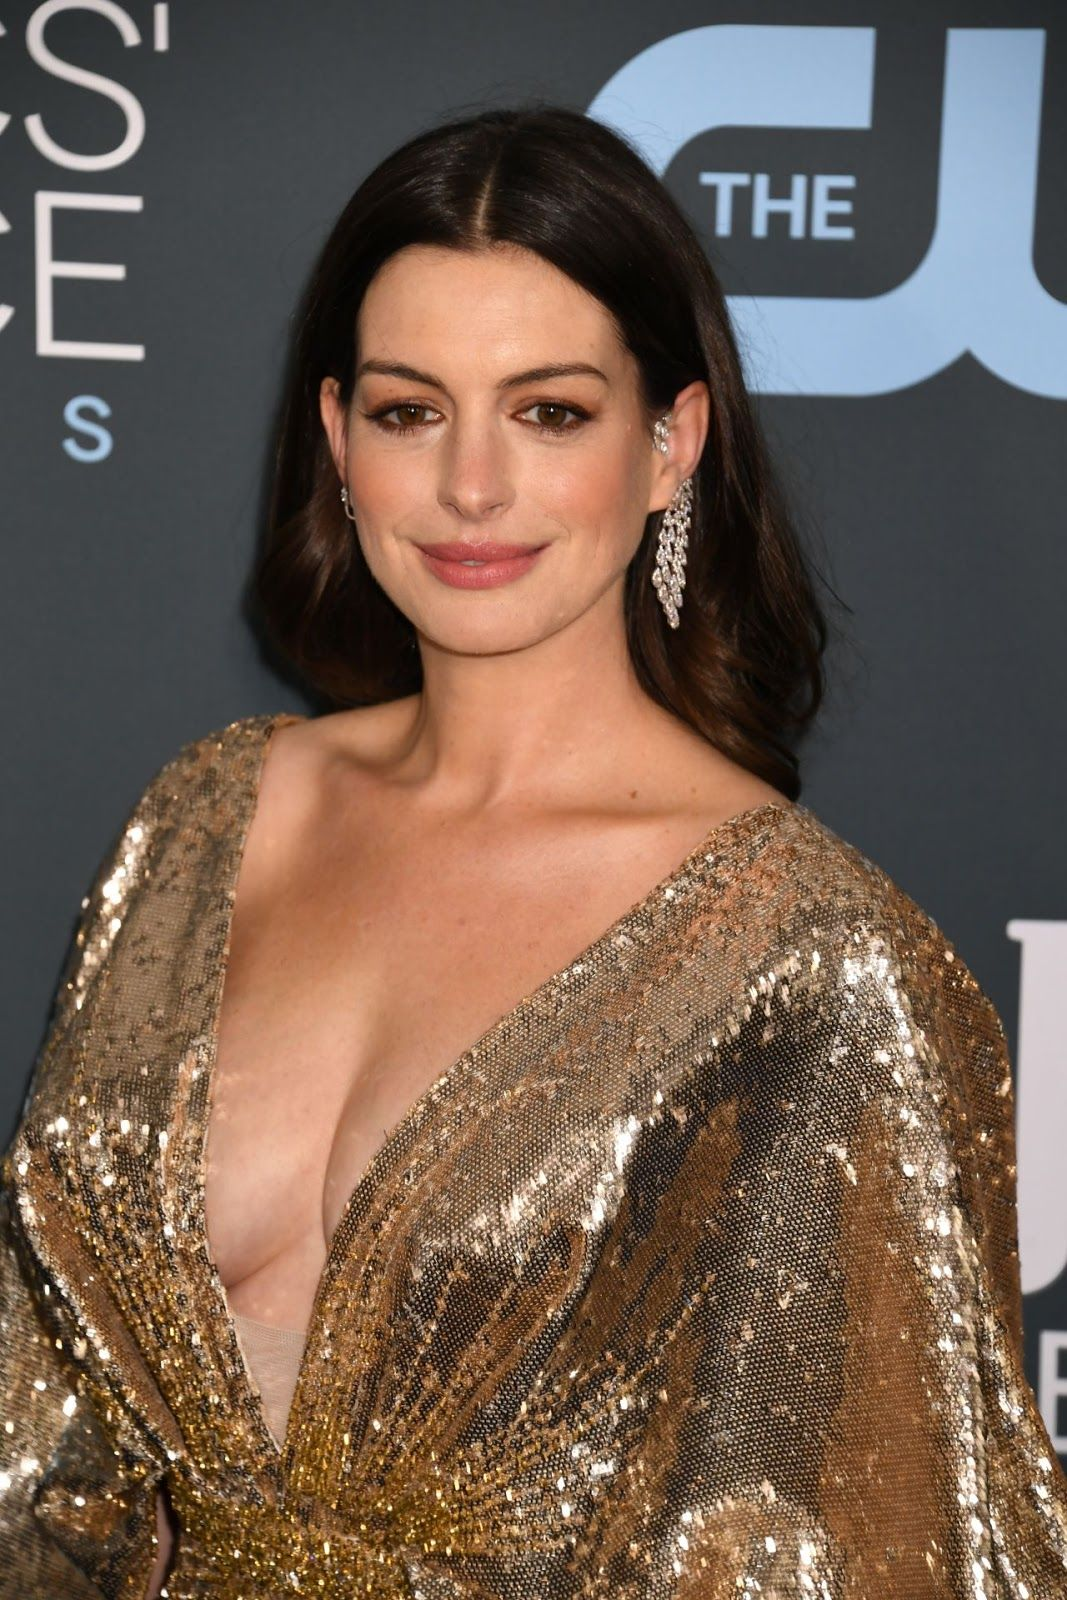 Anne Hathaway is the most gorgeous actress in Hollywood who has received many awards including an Academy Award, a Primetime Emmy Award, and a Golden Globe. She was one of the highest-paid actresses back in 2015. Hathaway also appeared in Forbes Celebrity 100 list in 2009. Her magnificent looks and exceptional acting talent is one of the reasons that she has got a huge fan following. Here we have got a collection of the bold and beautiful Anne Hathaway!